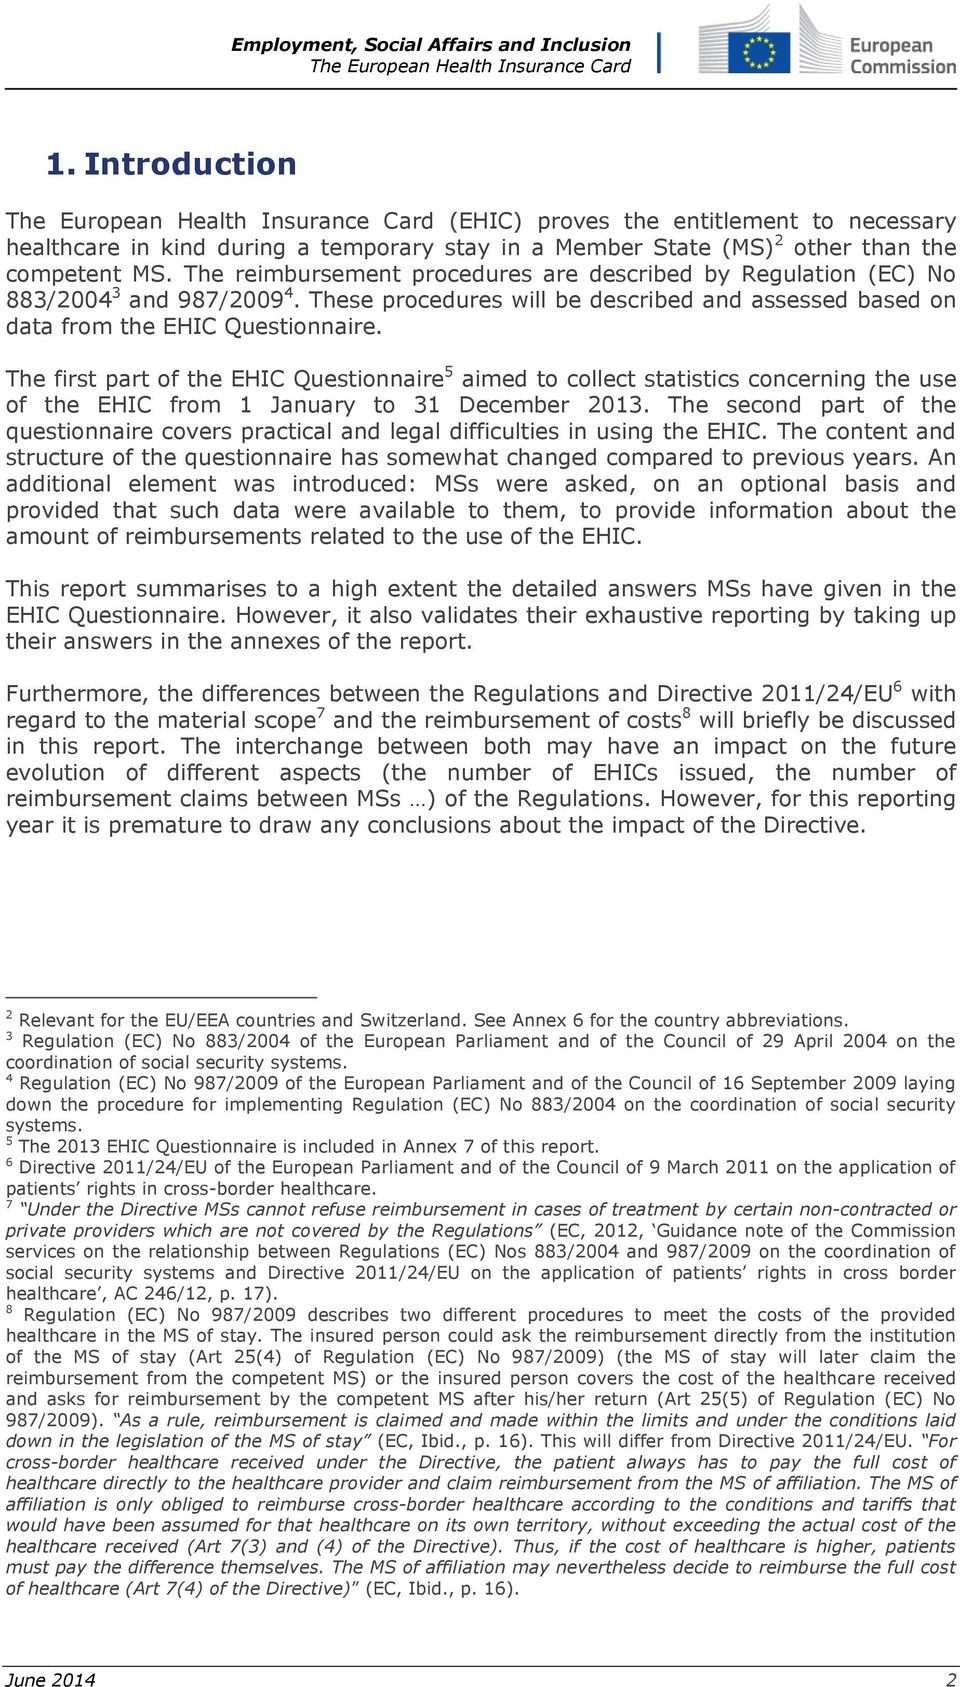 The first part of the EHIC Questionnaire 5 aimed to collect statistics concerning the use of the EHIC from 1 January to 31 December 2013.